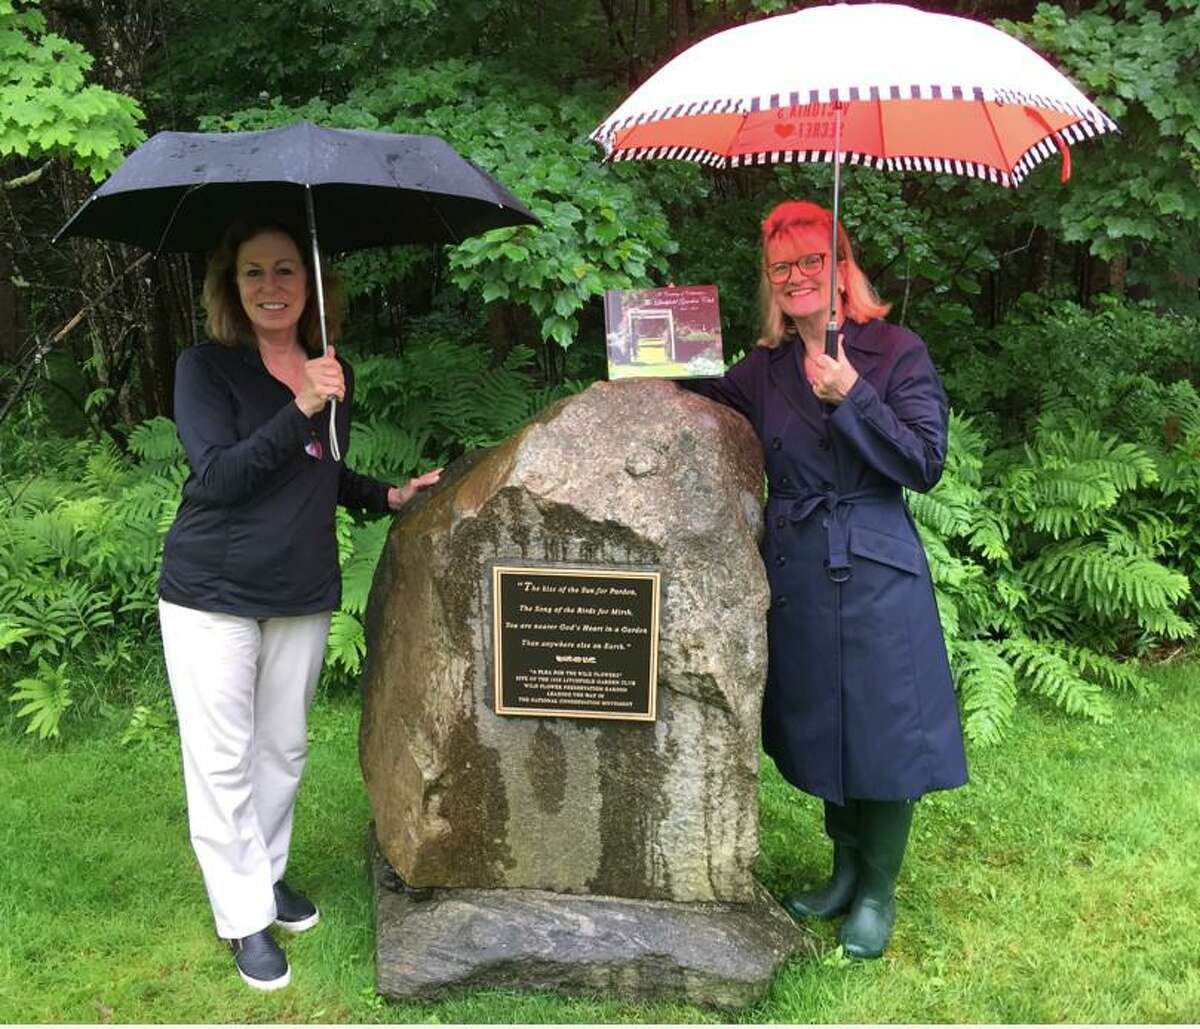 Maryanne McNeill and Jane Hinkel, project committee co-chairpersons of the Litchfield Garden Club, stand by the newly dedicated monument, and show the book,